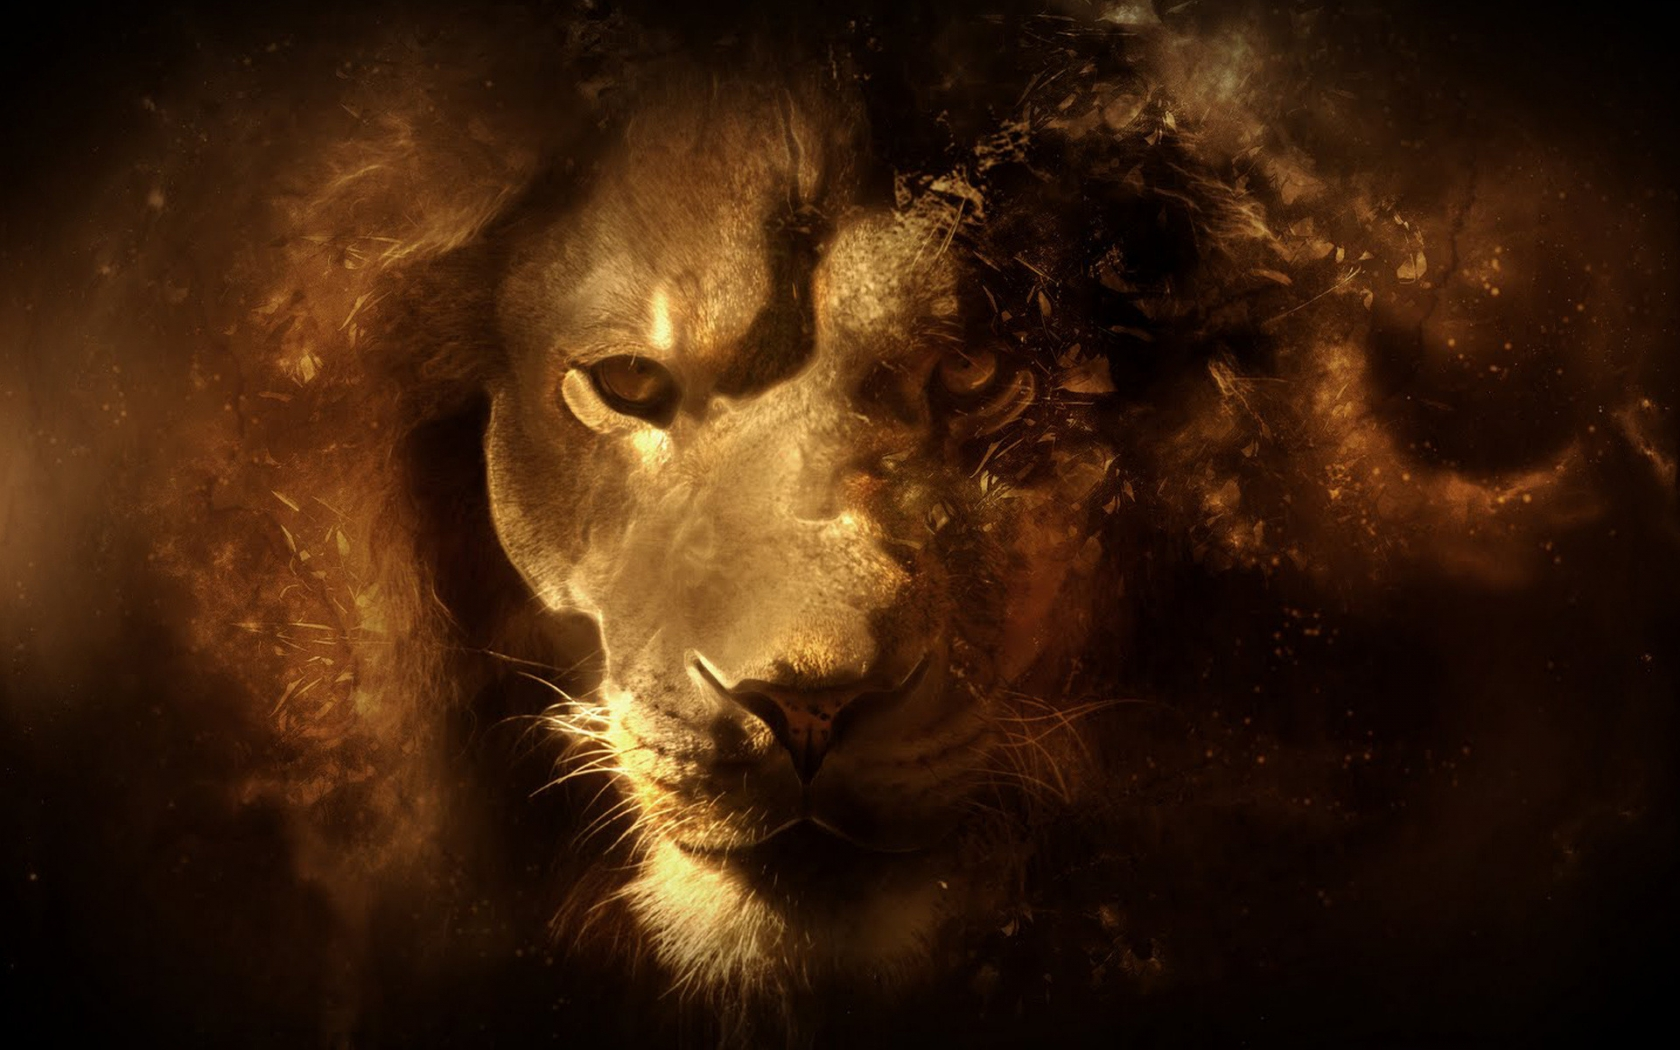 Fantasy Lion Portrait for 1680 x 1050 widescreen resolution